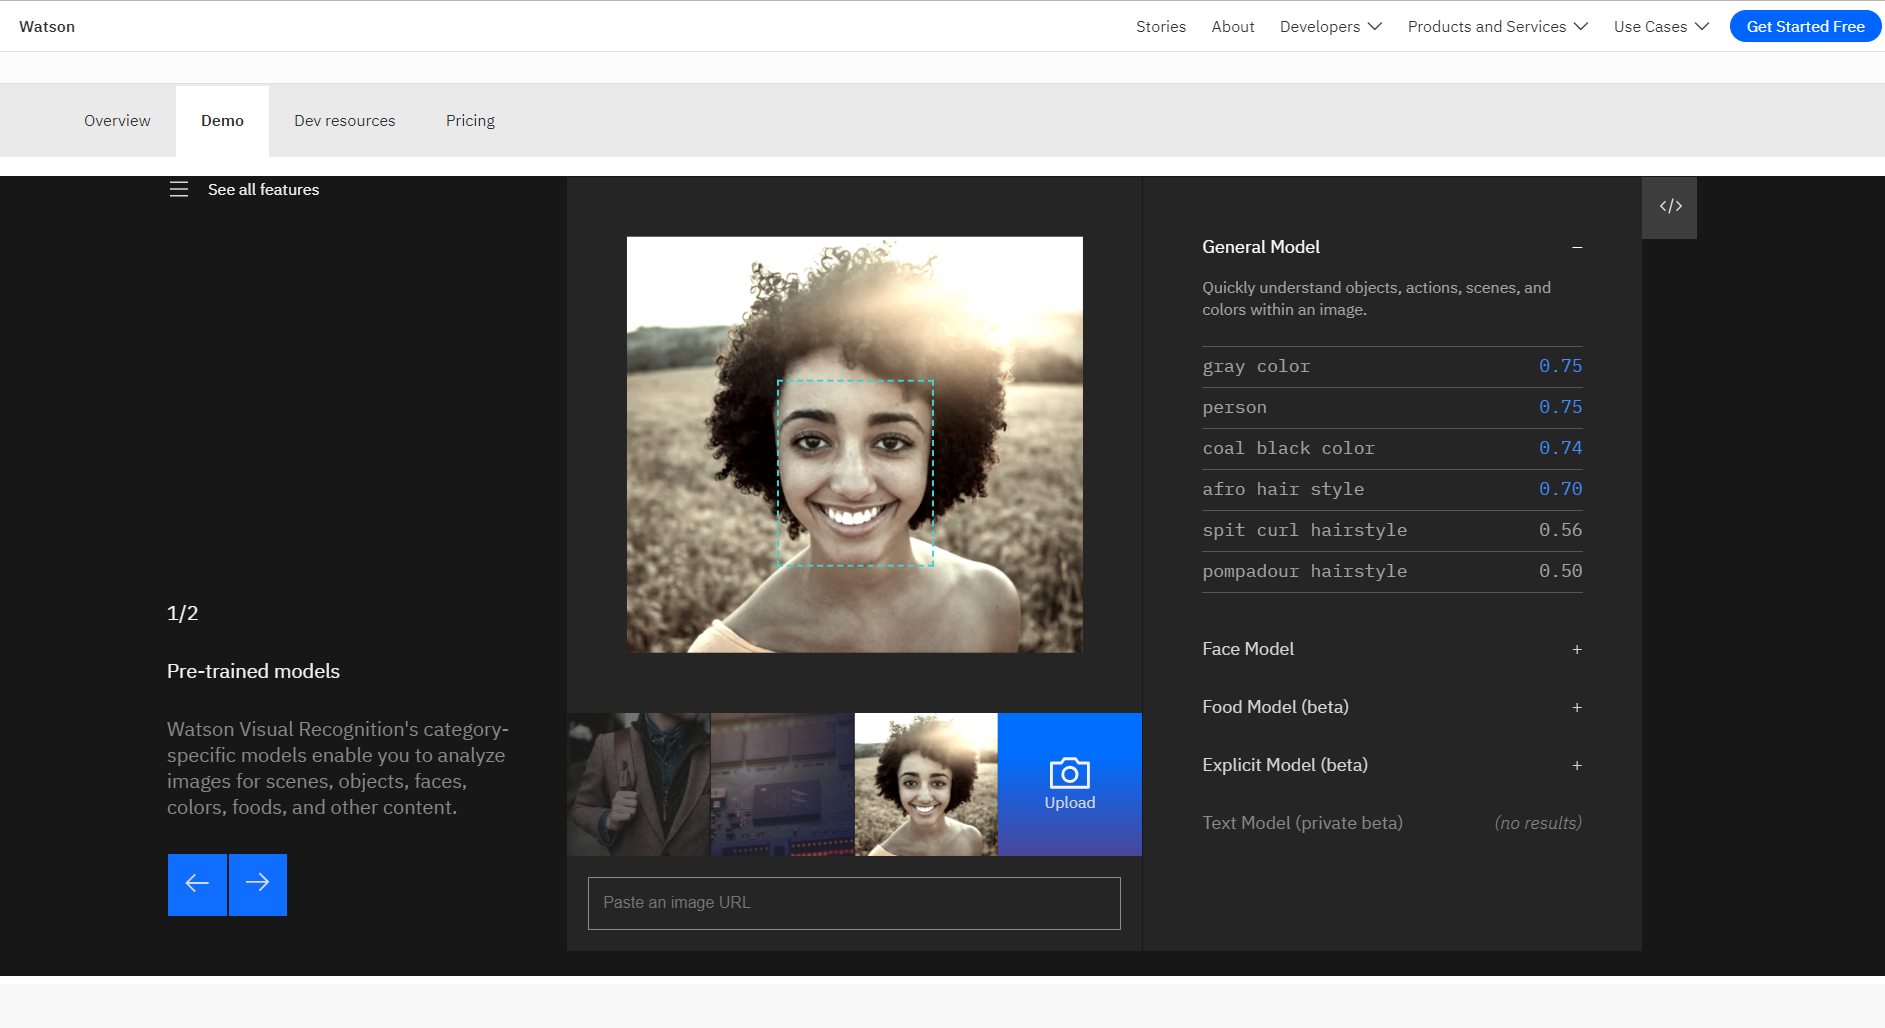 10 Best Image Recognition Tools - Talkwalker